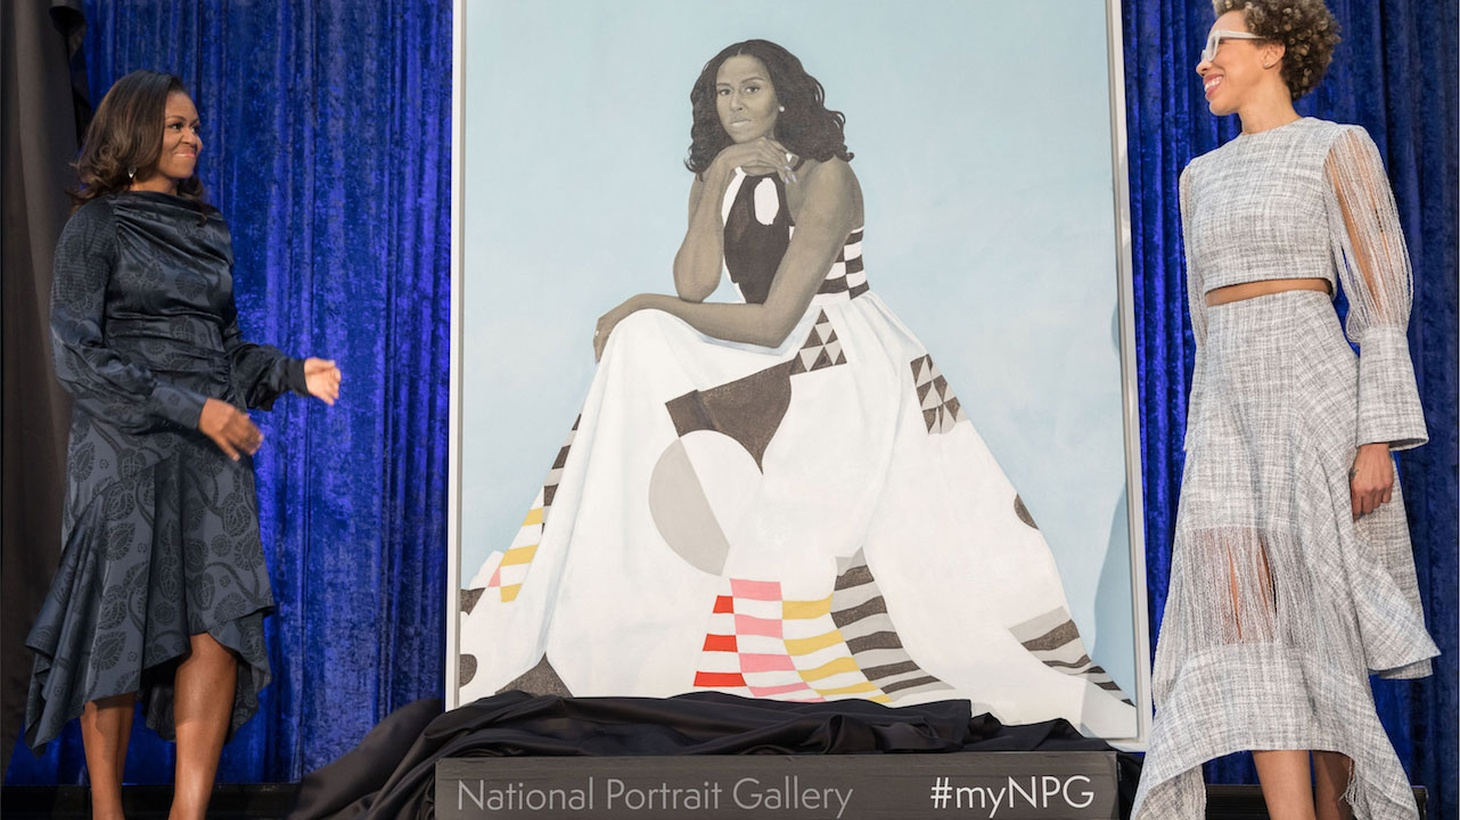 Edward talks about the front-page-news-worthy unveiling of Barack and Michelle Obamas' portraits at the National Portrait Gallery in Washington, D.C.